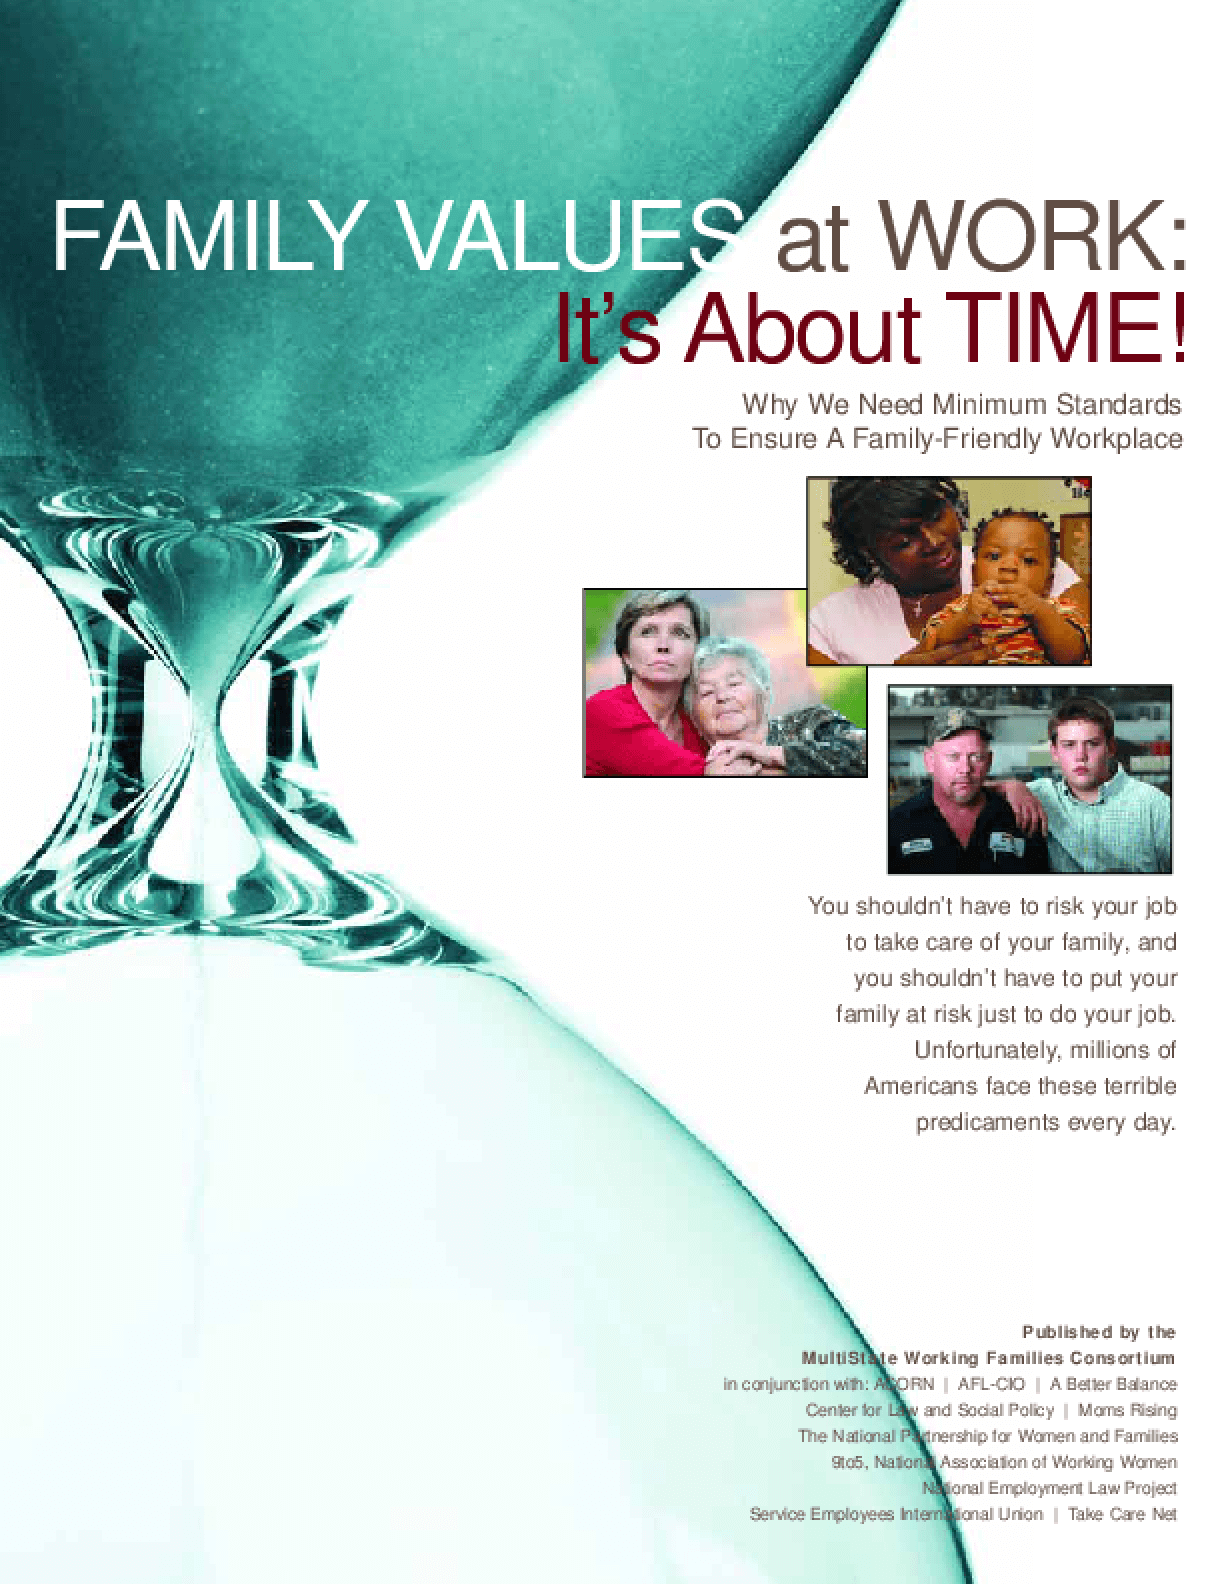 Family Values at Work: It's About Time!: Why We Need Minimum Standards to Ensure a Family-Friendly Workplace